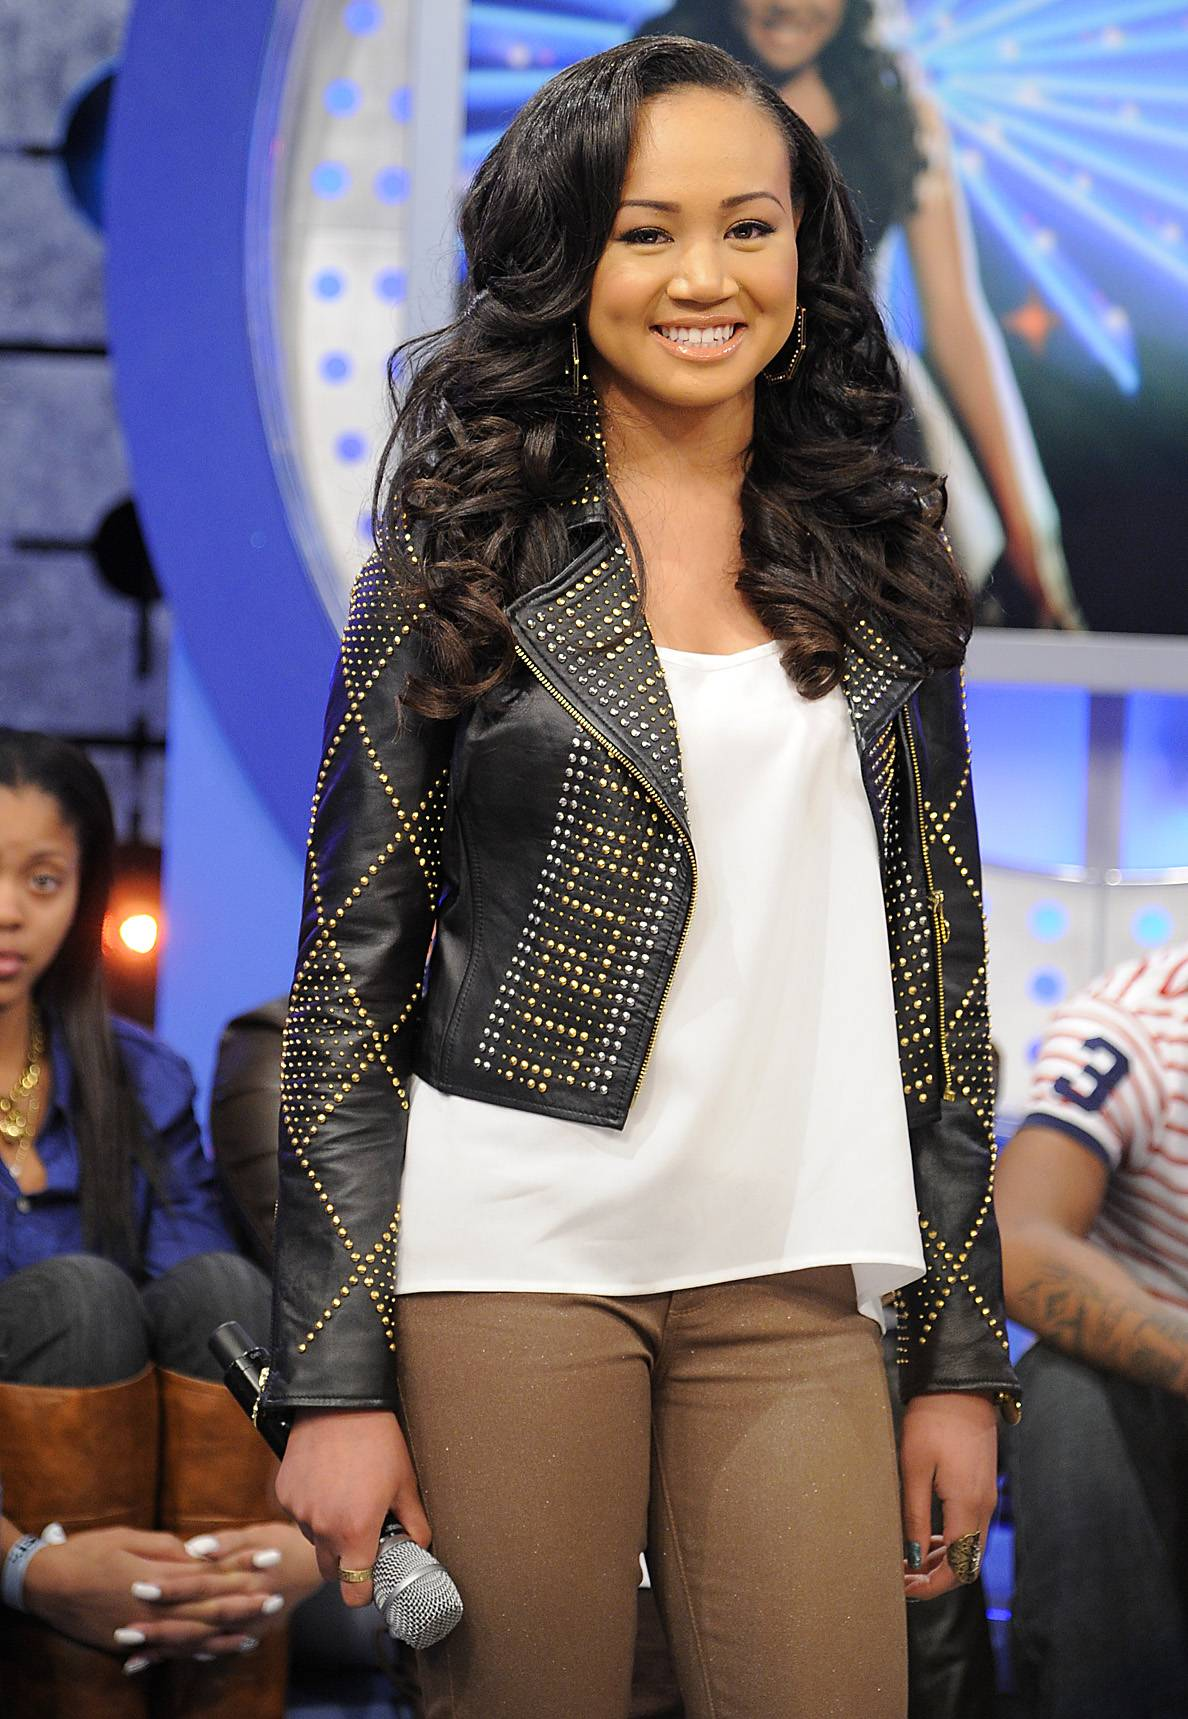 Check Me Out - Cymphonique at 106 & Park, January 05, 2012.(Photo: John Ricard/BET)